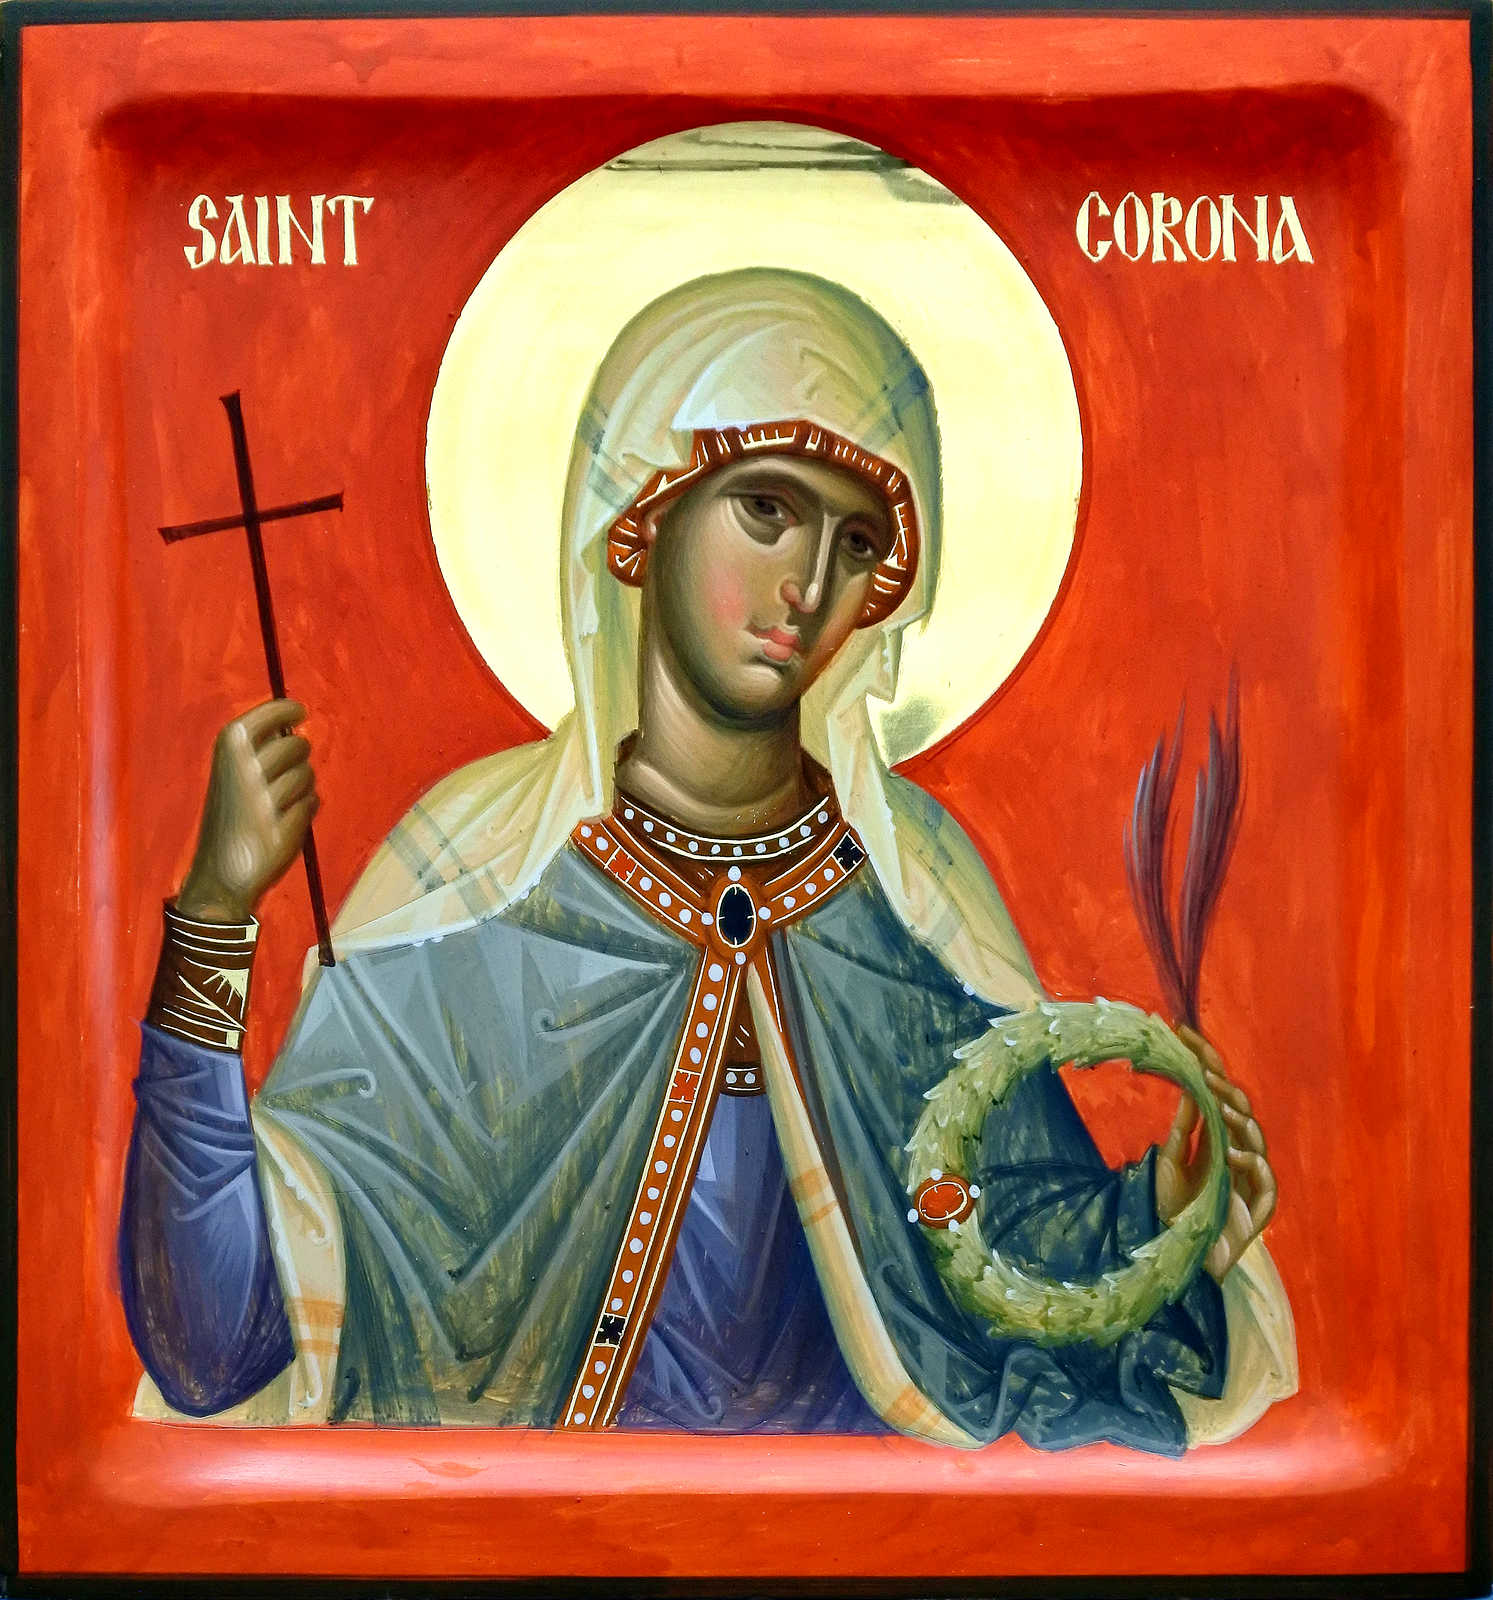 Who are the patron saints? (St. Charalampos, St. Corona, St. Nikephoros)